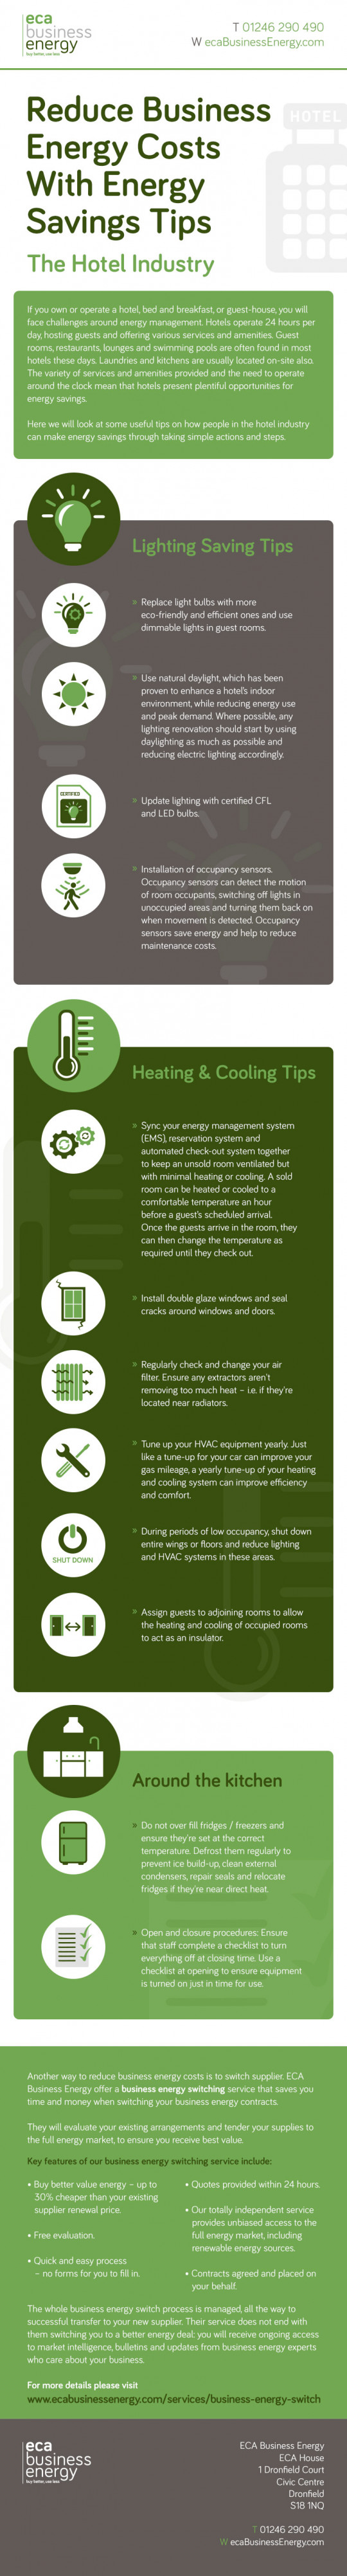 Reduce Business Energy Costs With Energy Saving Tips - The Hotel Industry